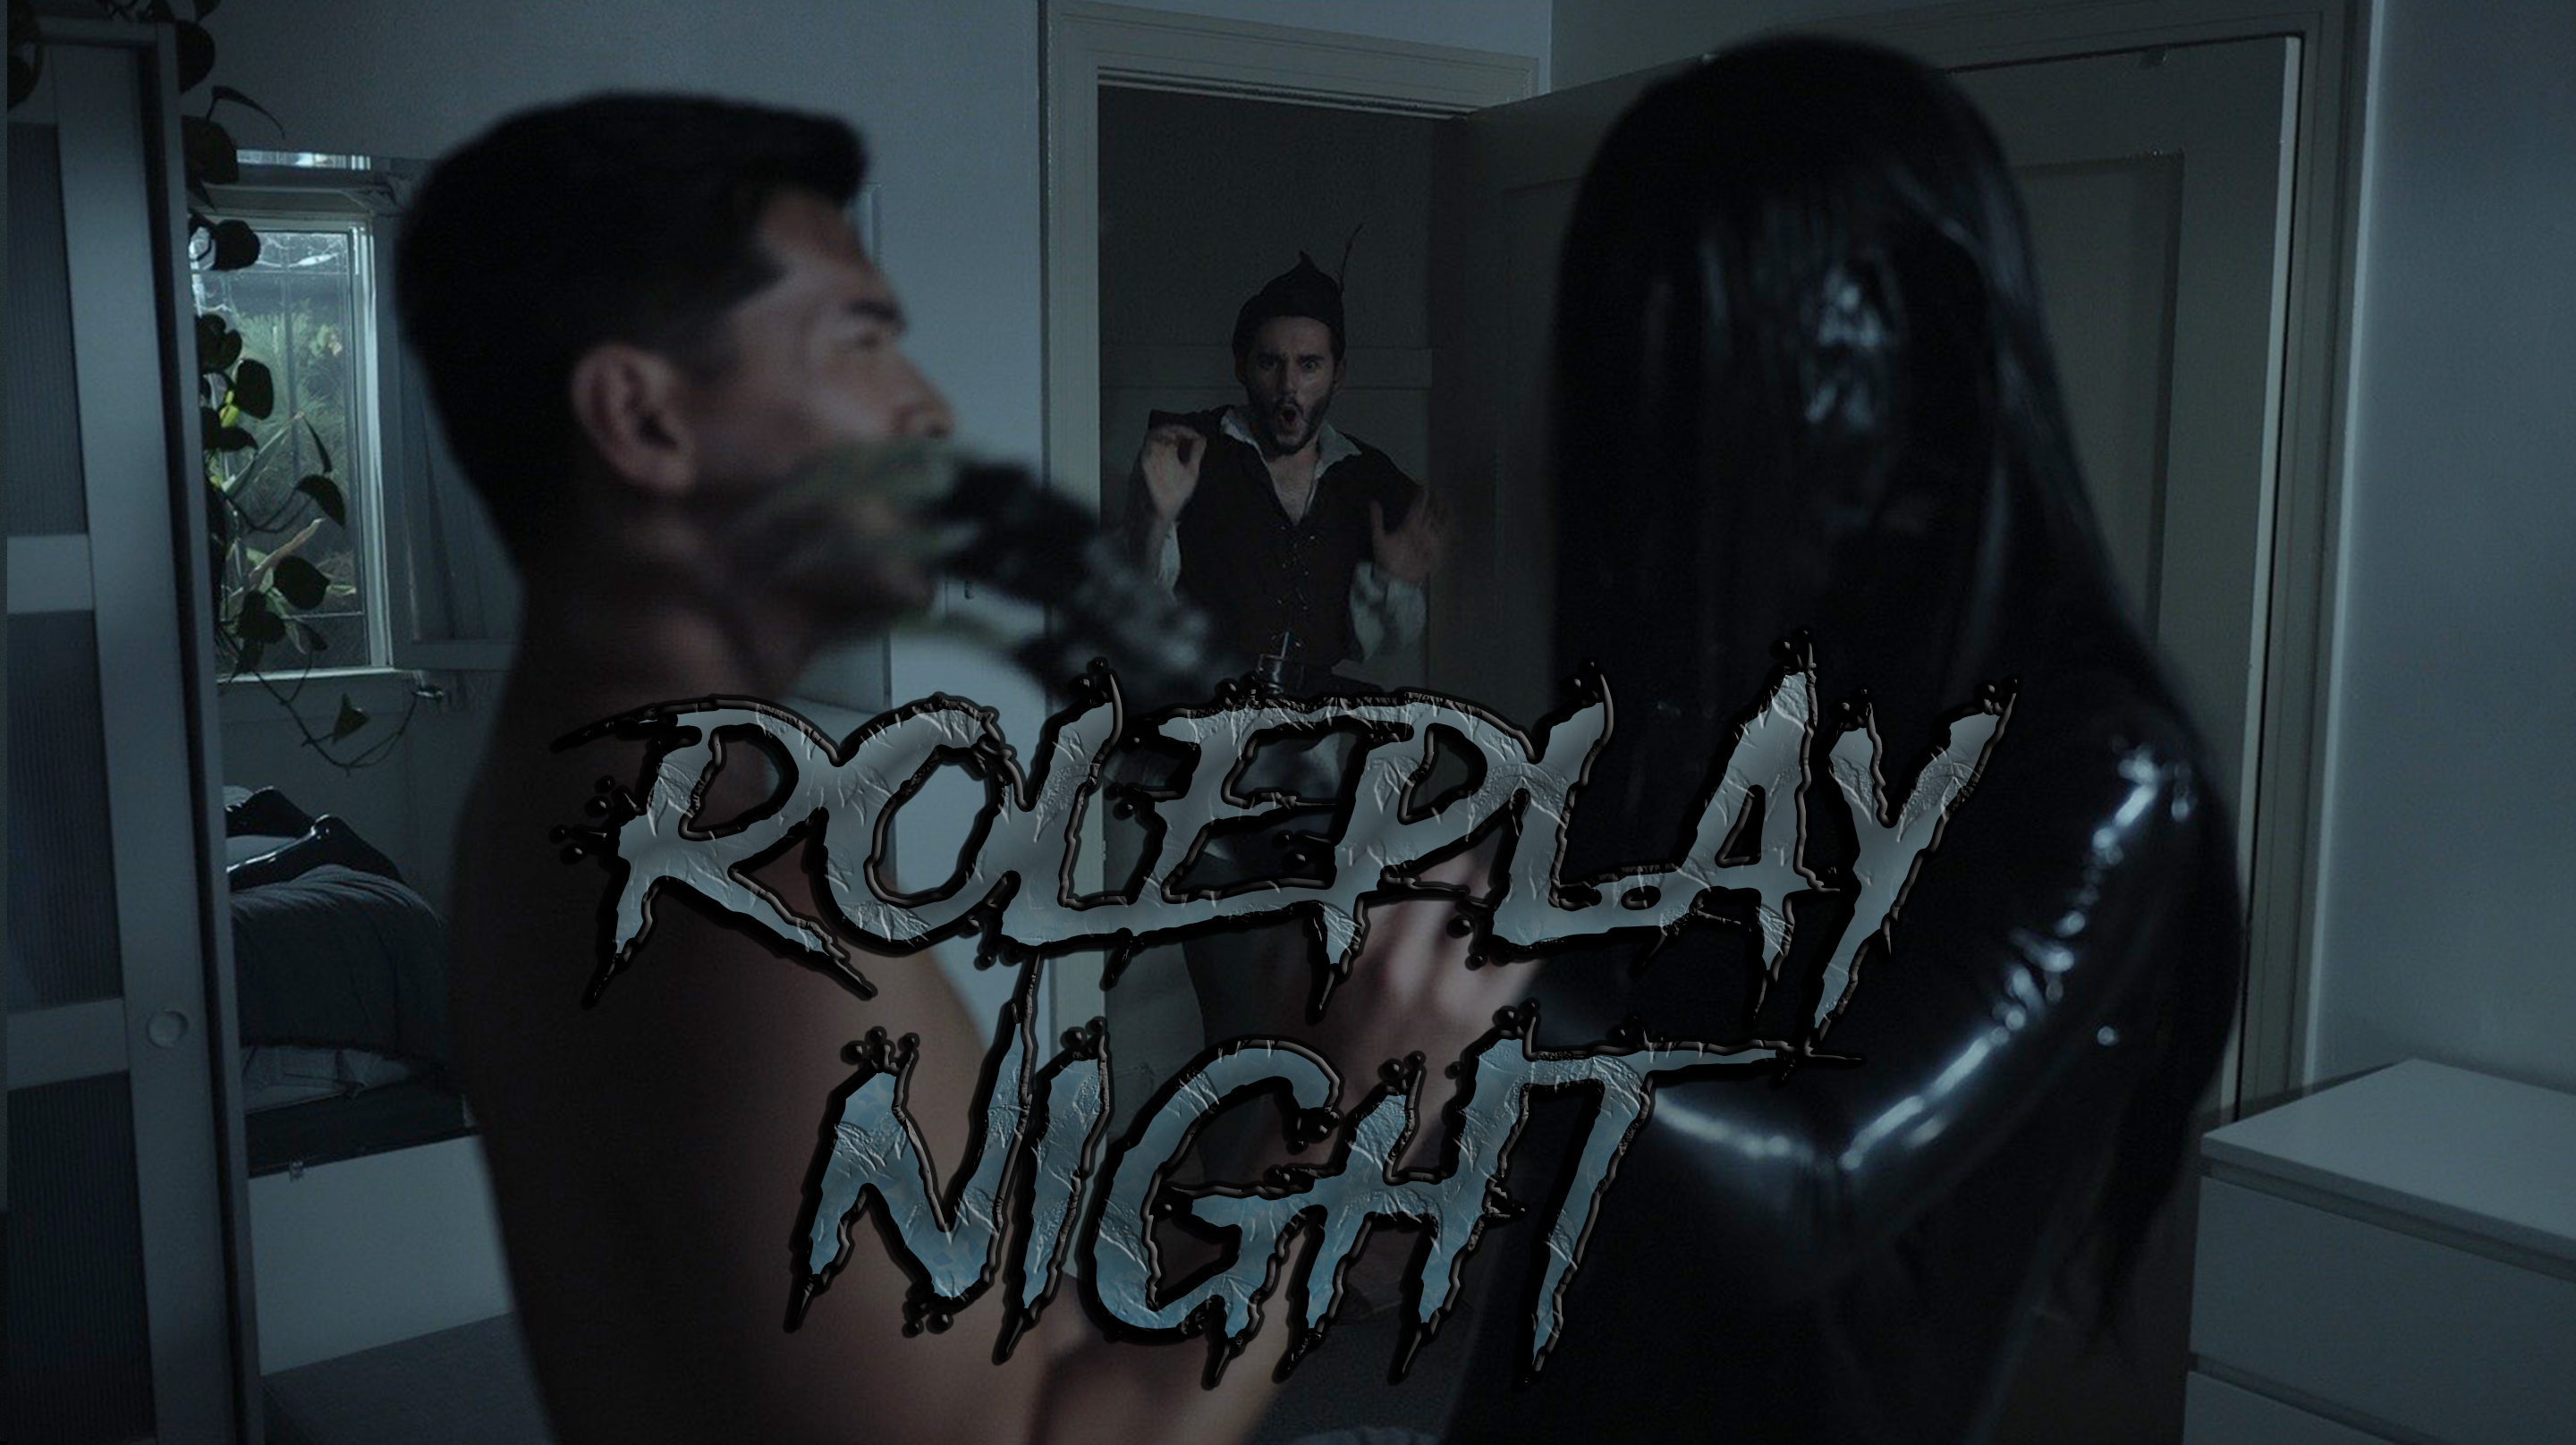 Roleplay Night | My Rode Reel 2020